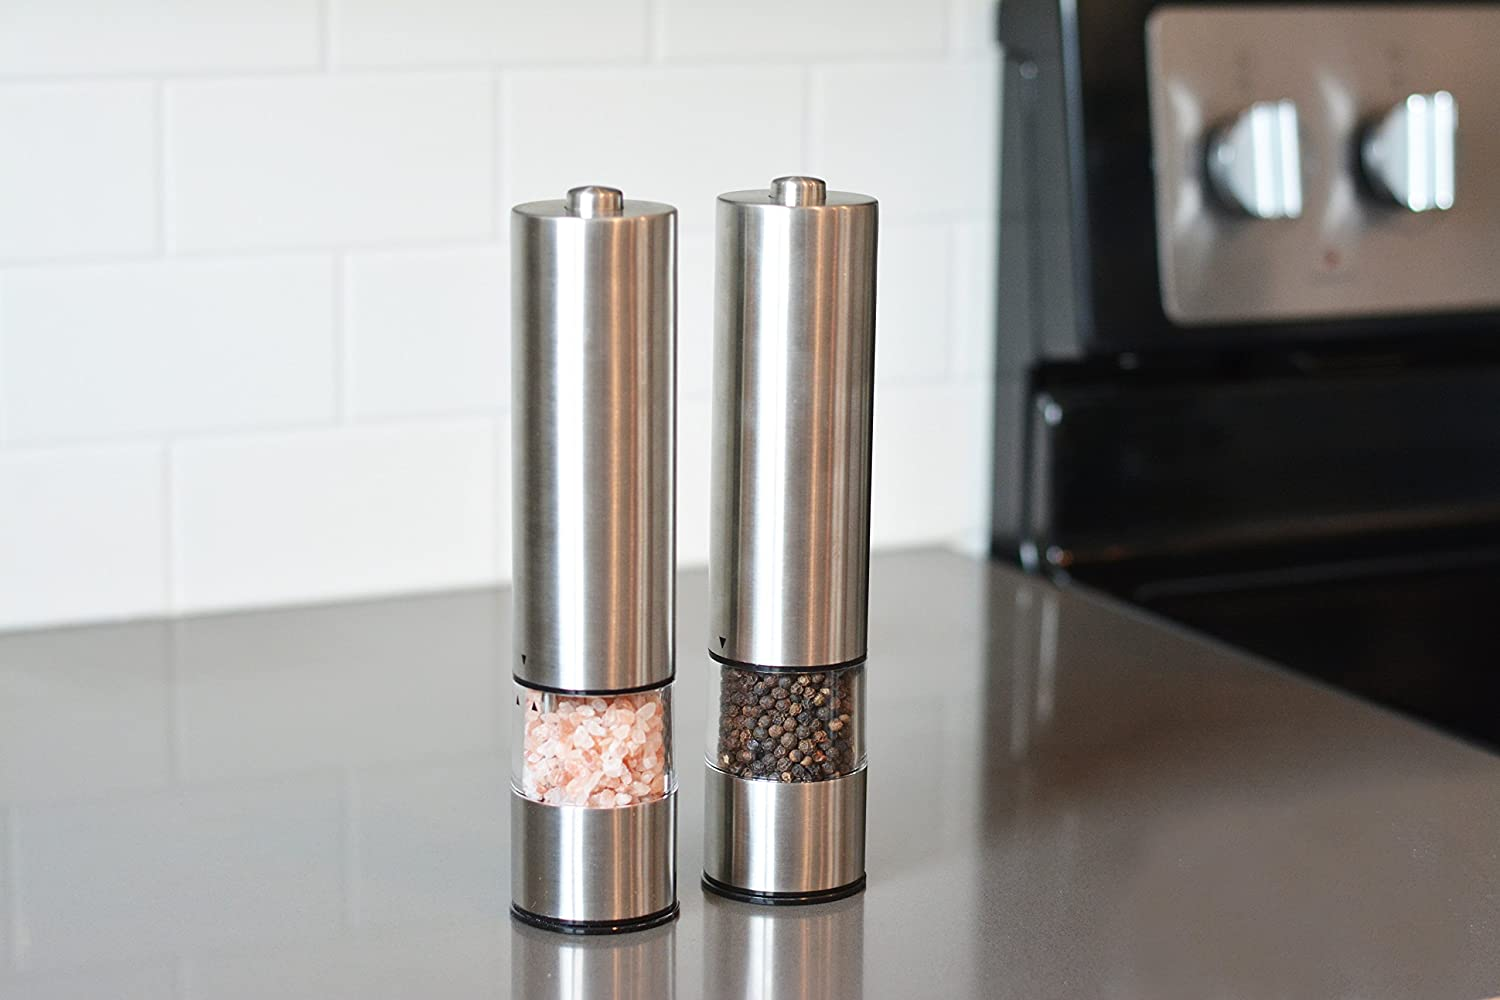 Ceramic Grinders Elegance Battery Operated Stainless Steel Mill with Light Pack of 2 Mills Salt And Pepper Grinder   Automatic One Handed Operation Electric Salt and Pepper Grinder Set